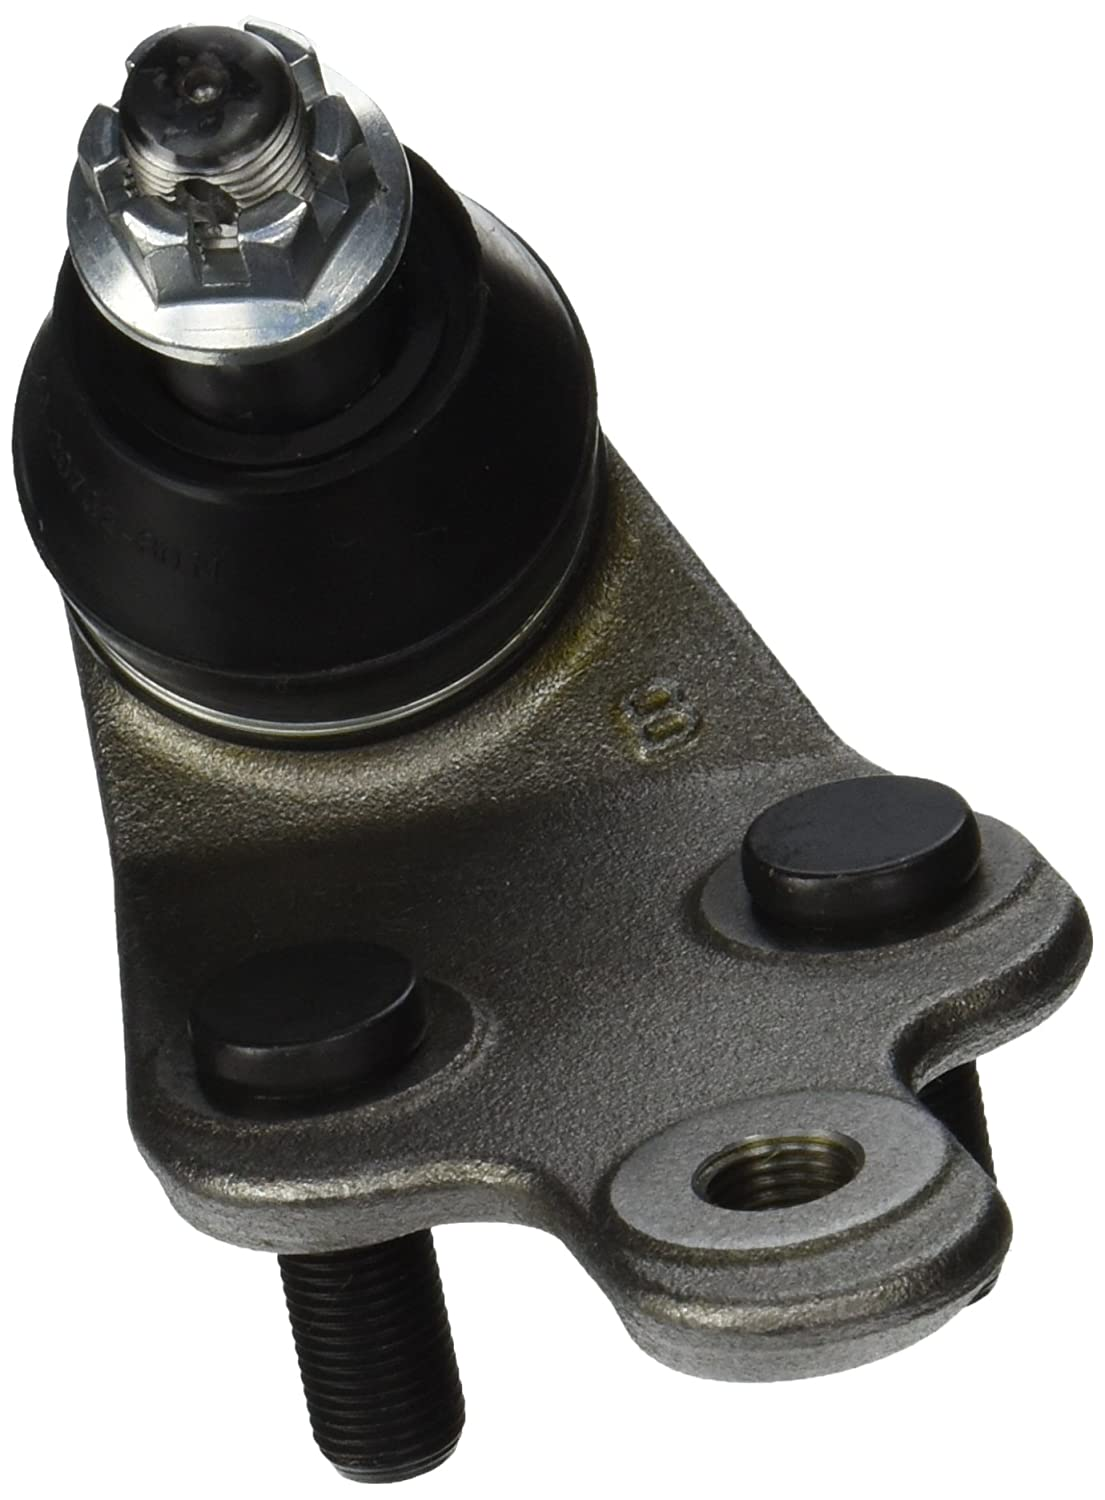 Moog K500044 Ball Joint